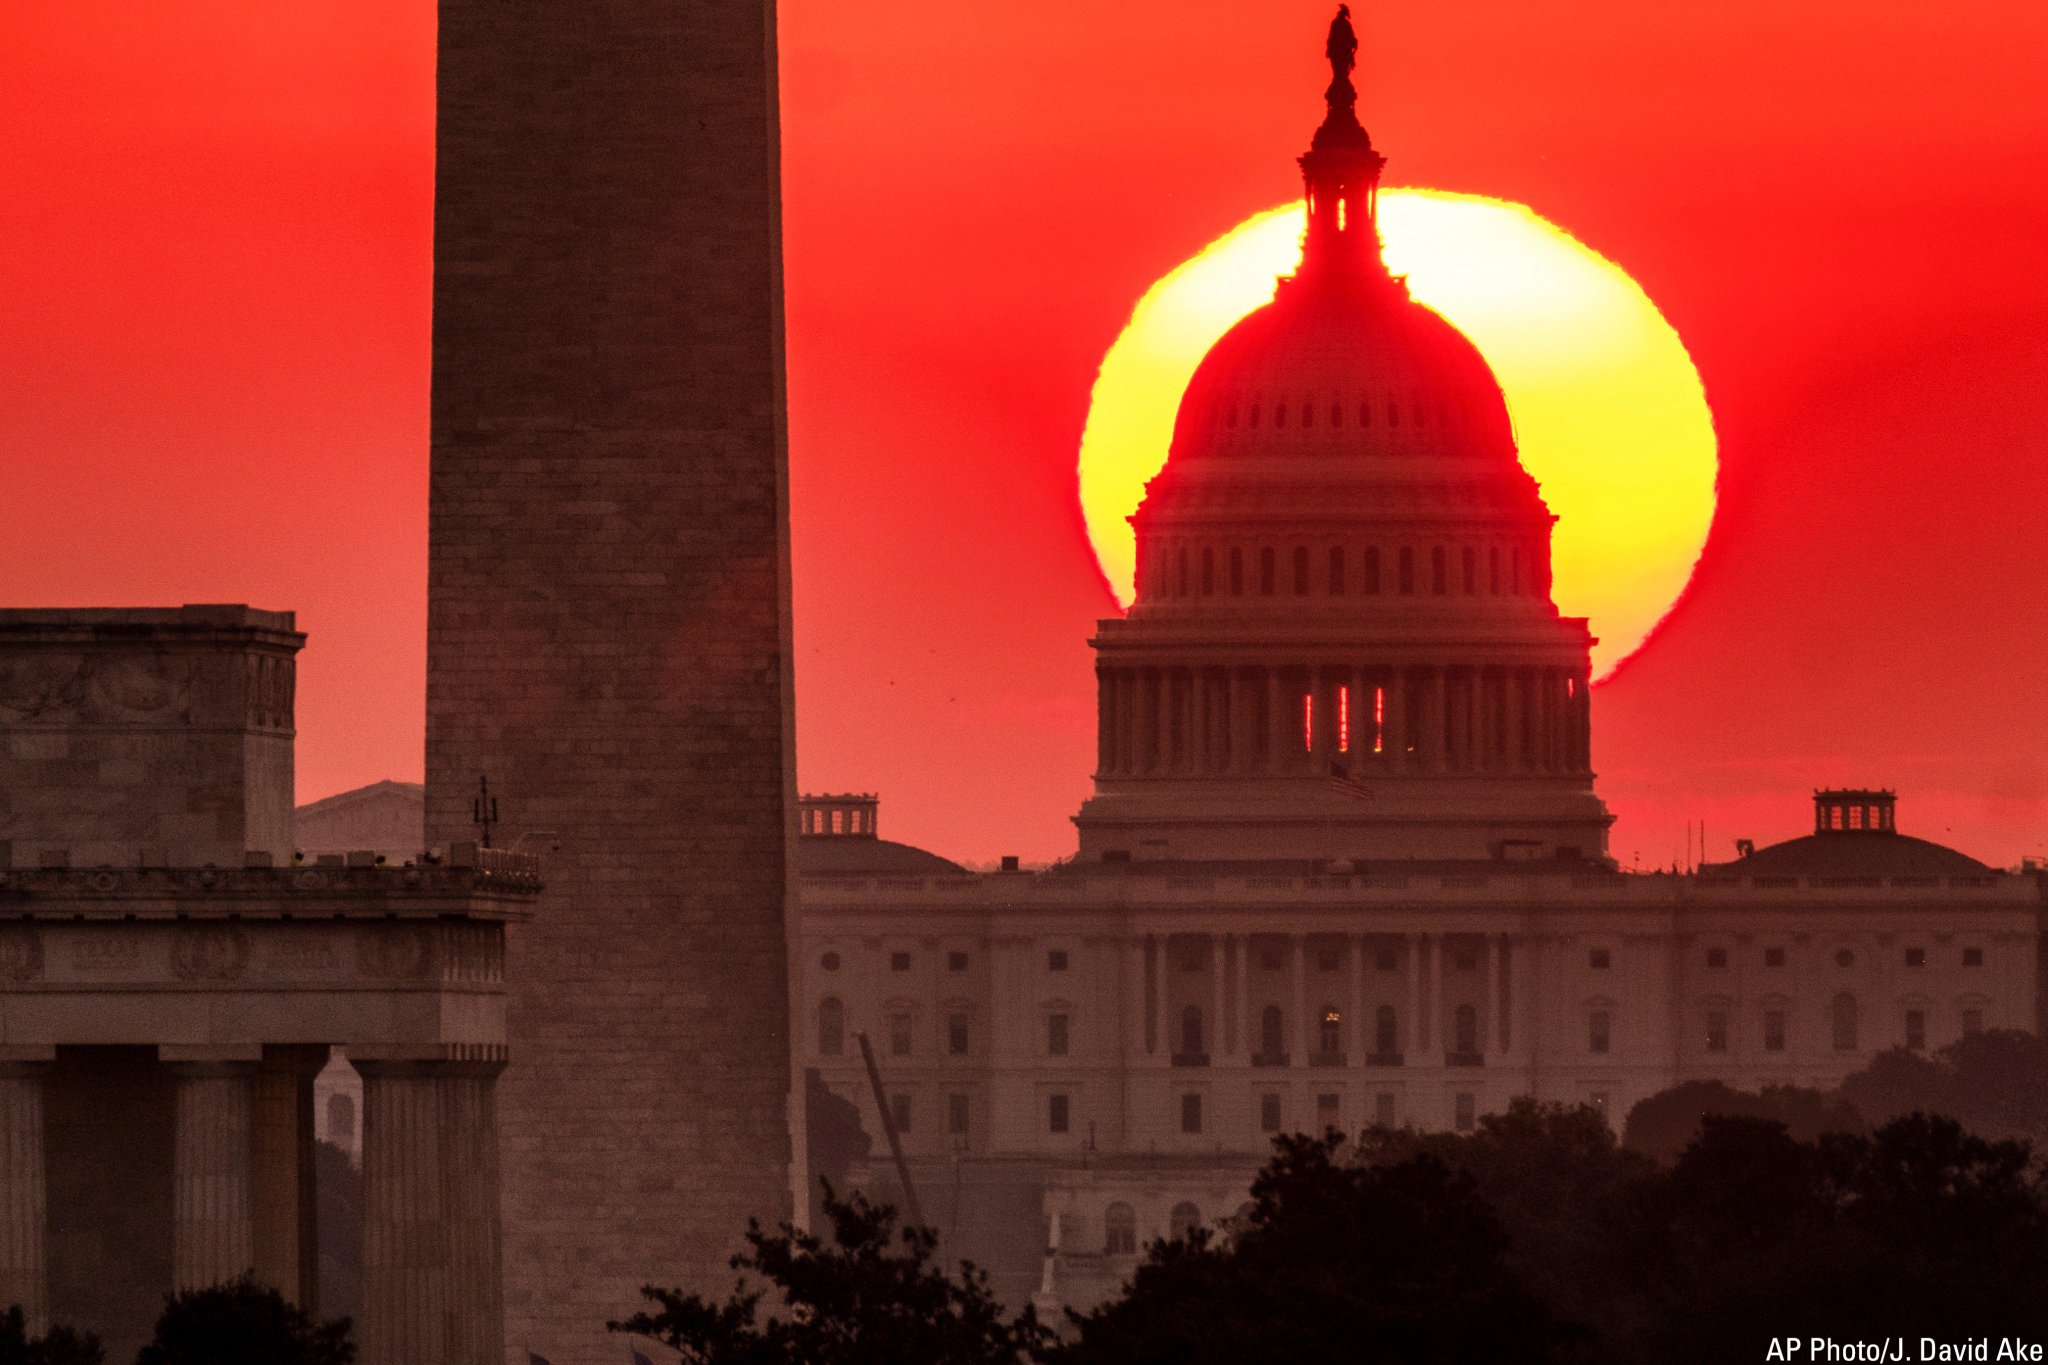 Photo of the Day: The sun rises behind the U.S. Capitol in Washington at dawn. https://t.co/pn96BY8o7Q